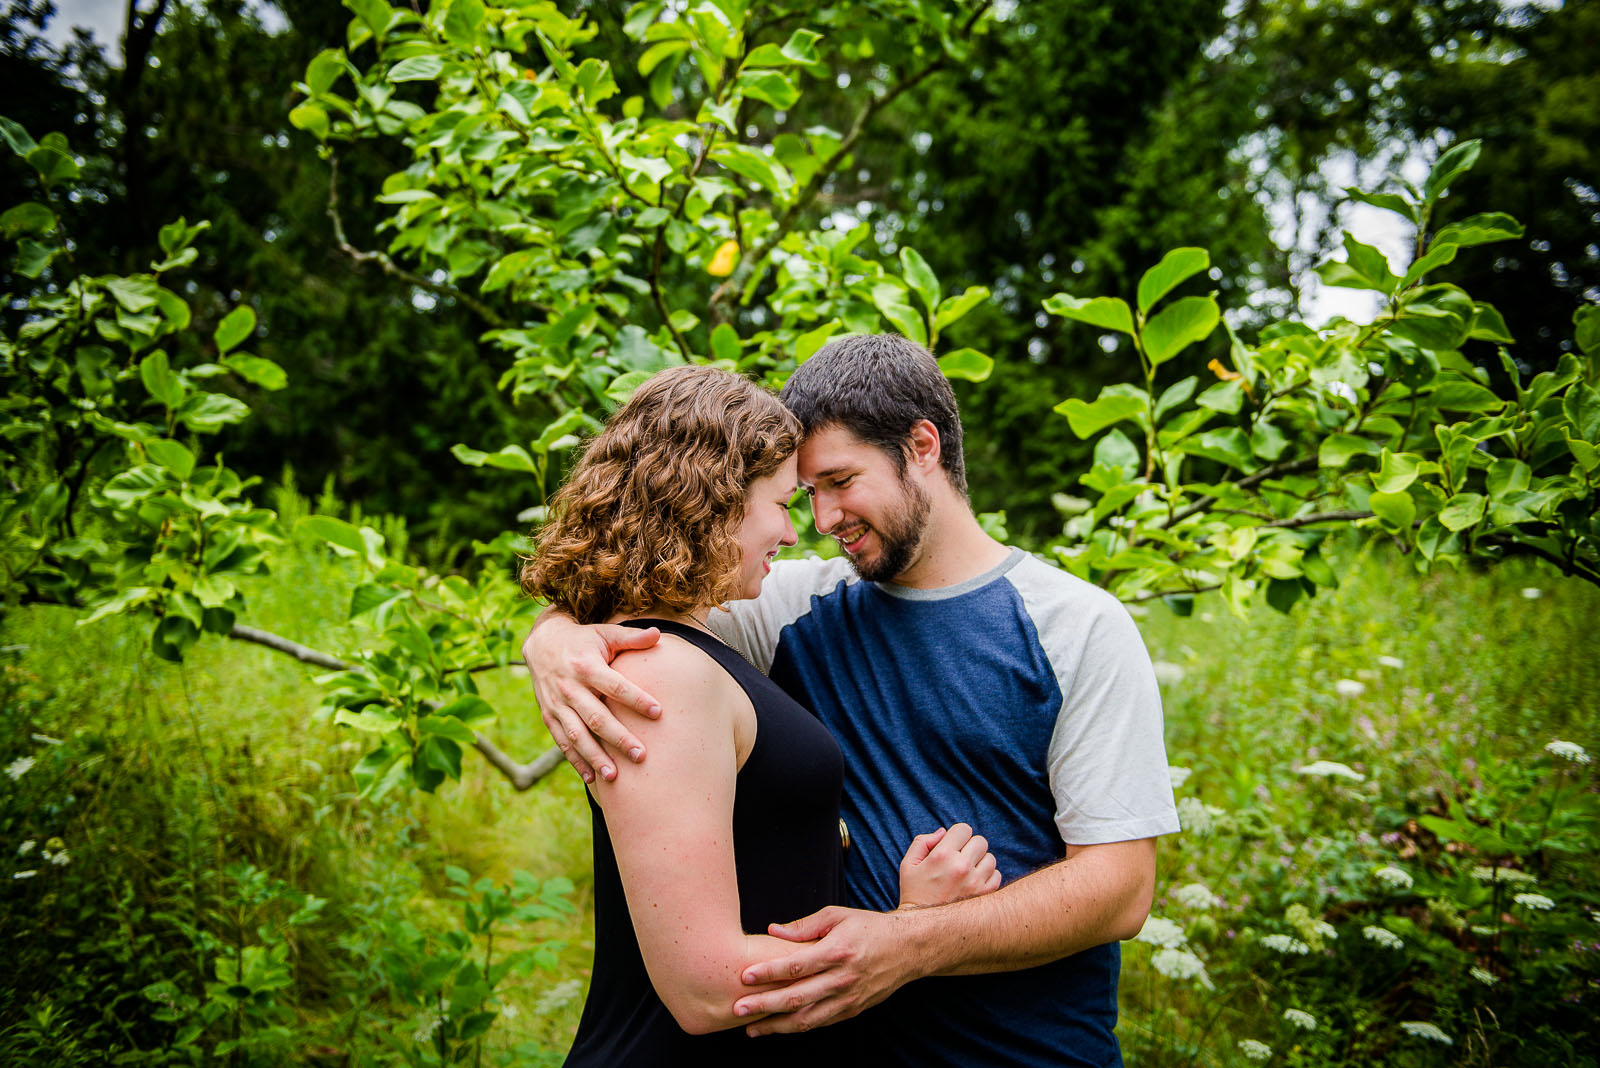 Eric_and_Christy_Photography_Blog_Engagement_Andrea_Clint-23